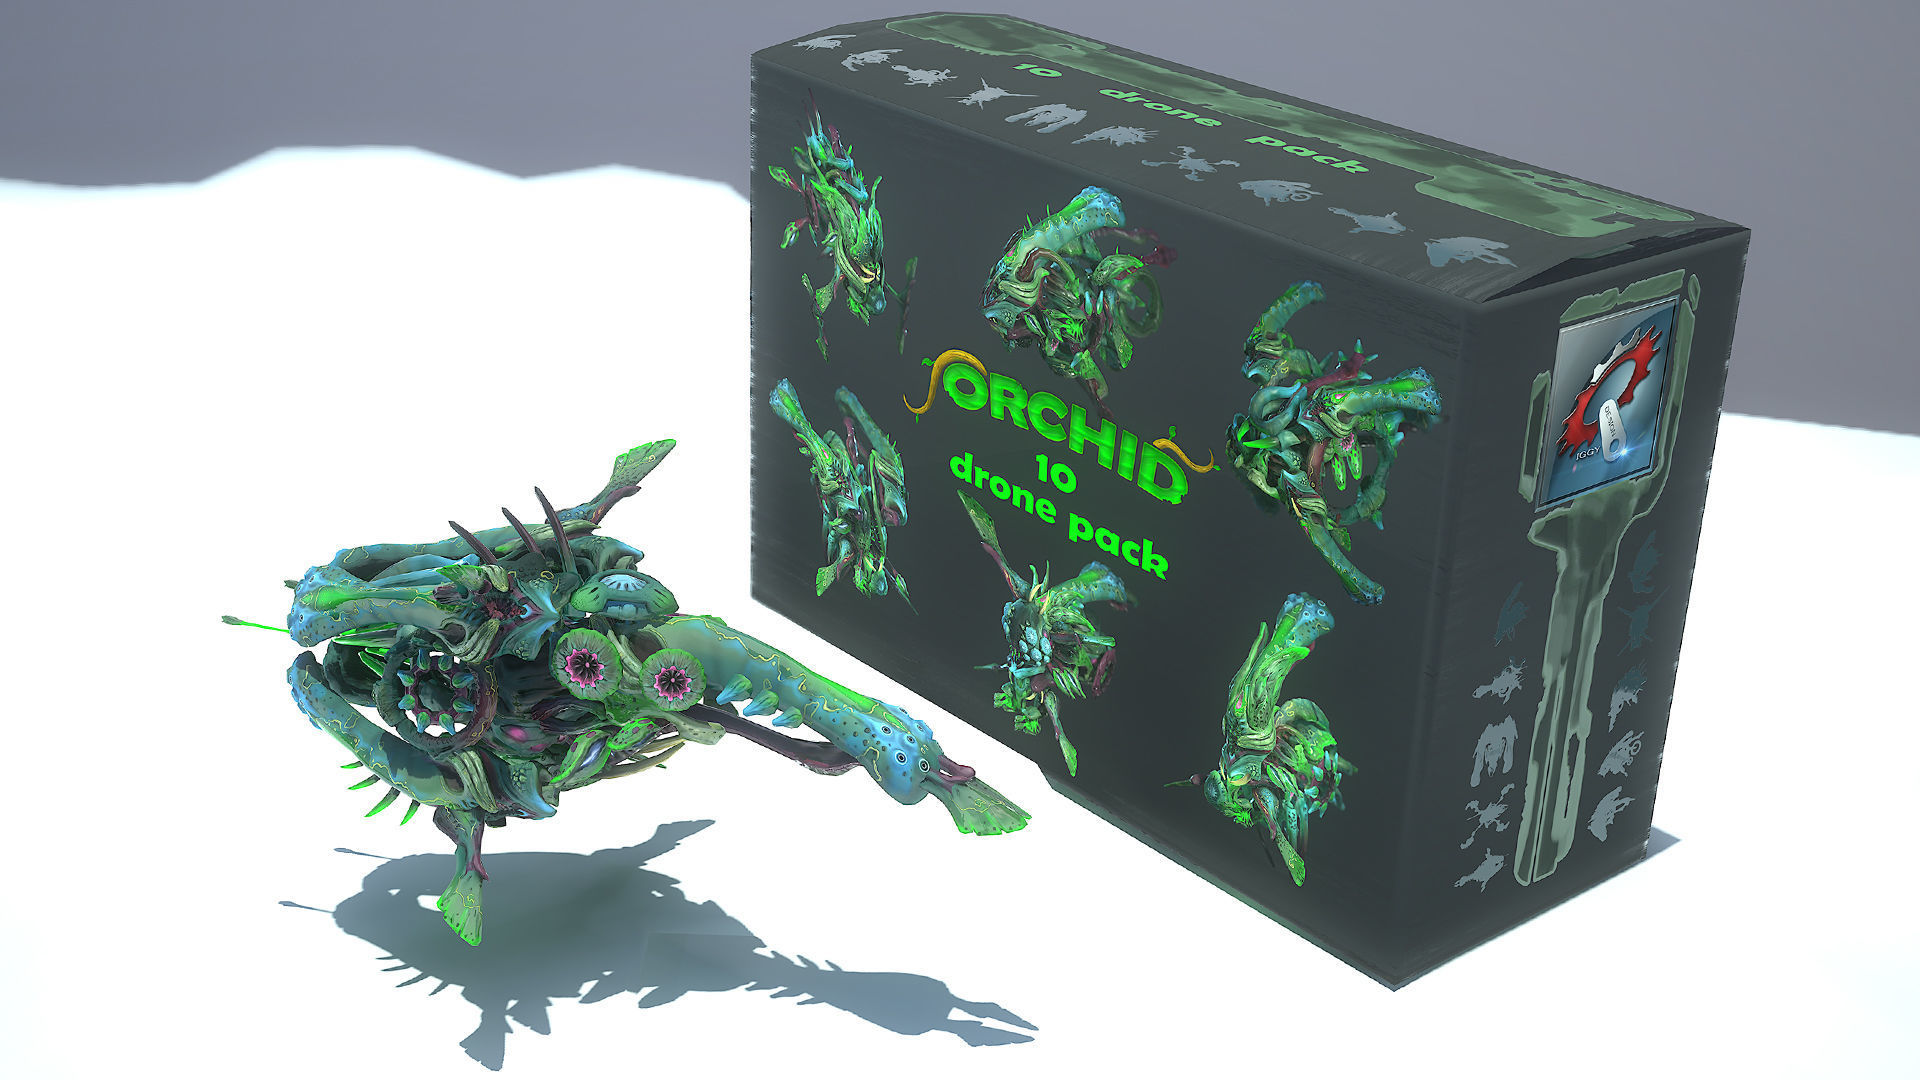 10 Drones - Orchid Pack - Lowpoly PBR